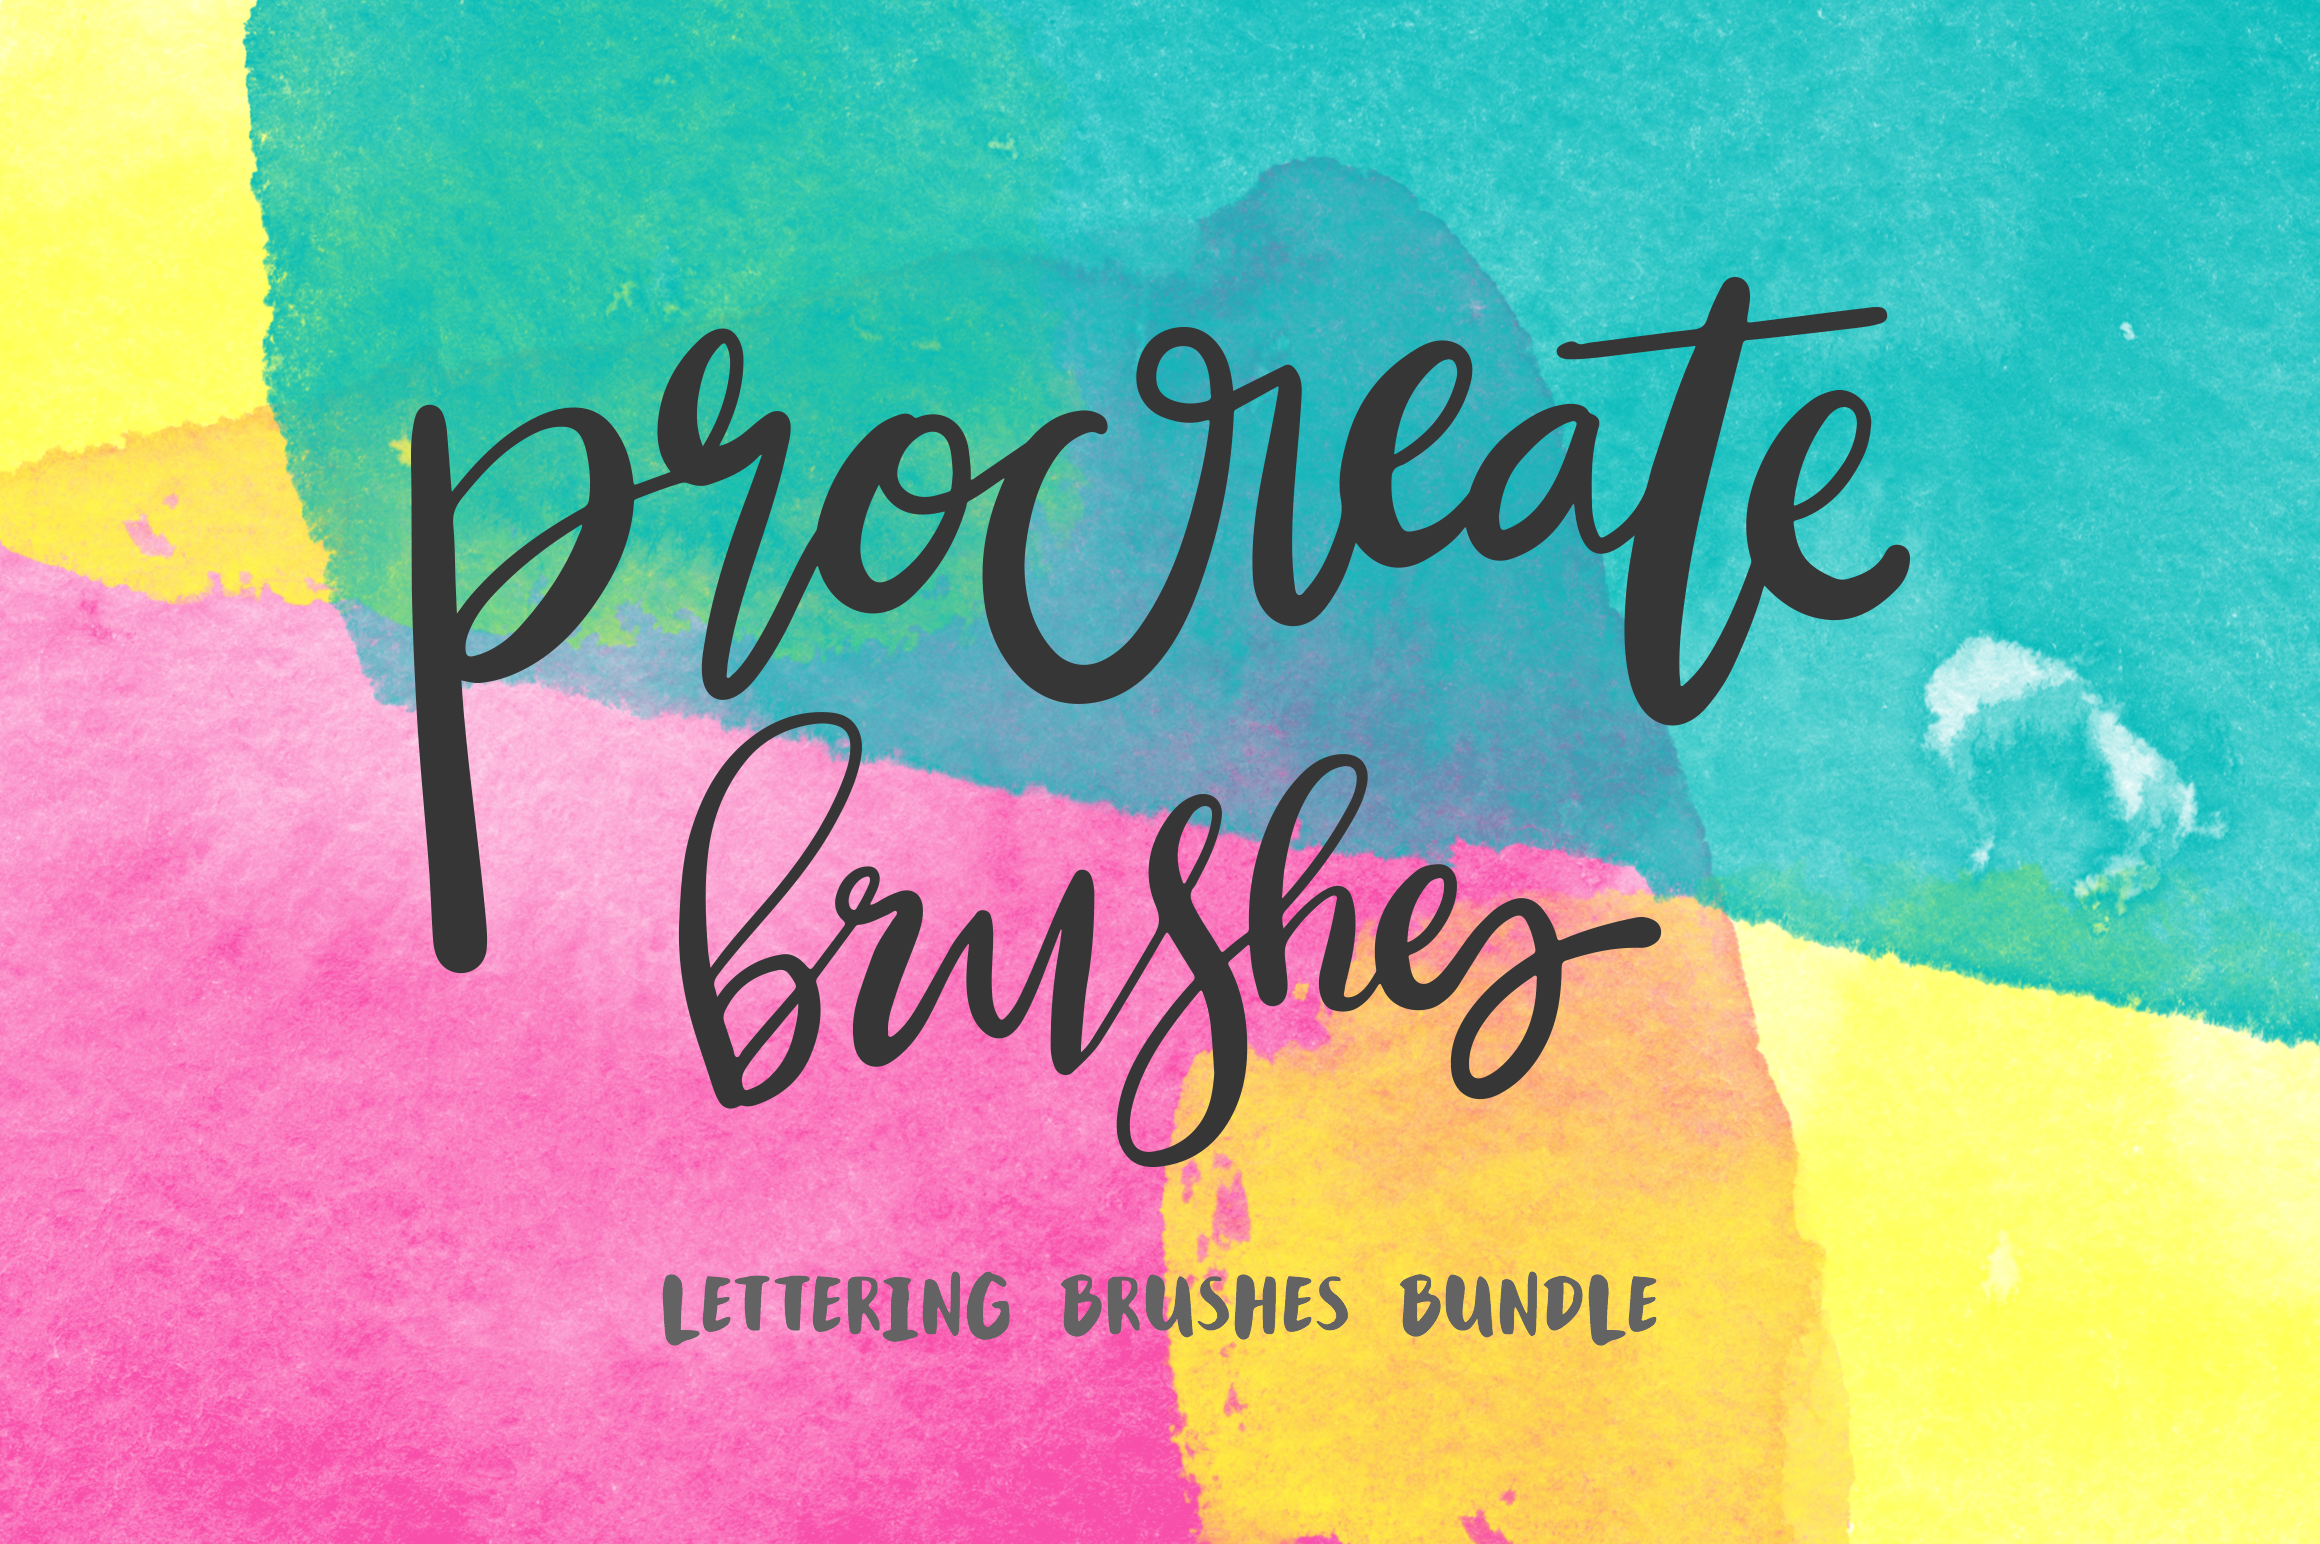 Procreate App Lettering Brushes by Mikko Sumulong